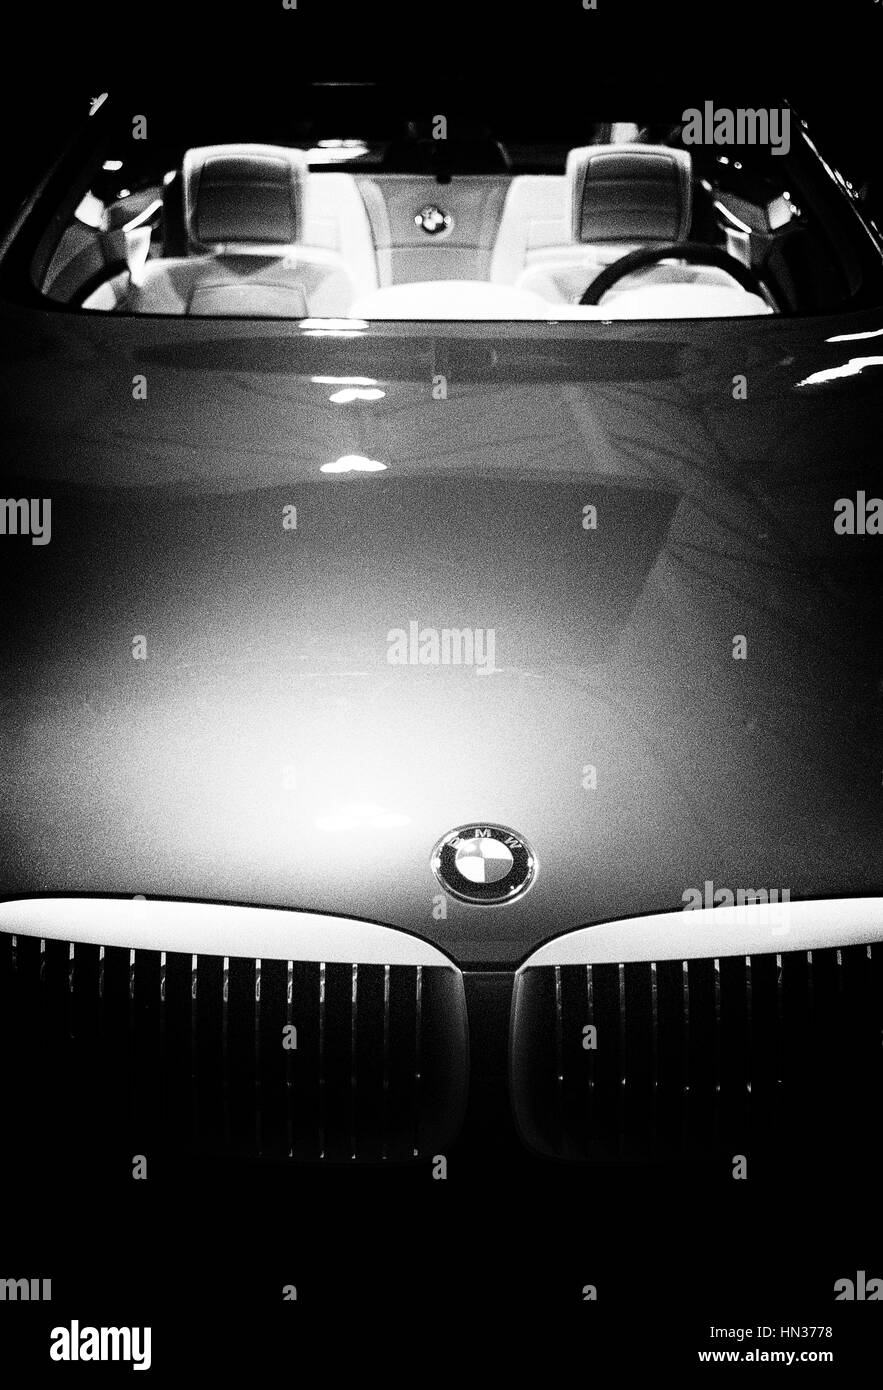 Concept BMW convertible car - Stock Image